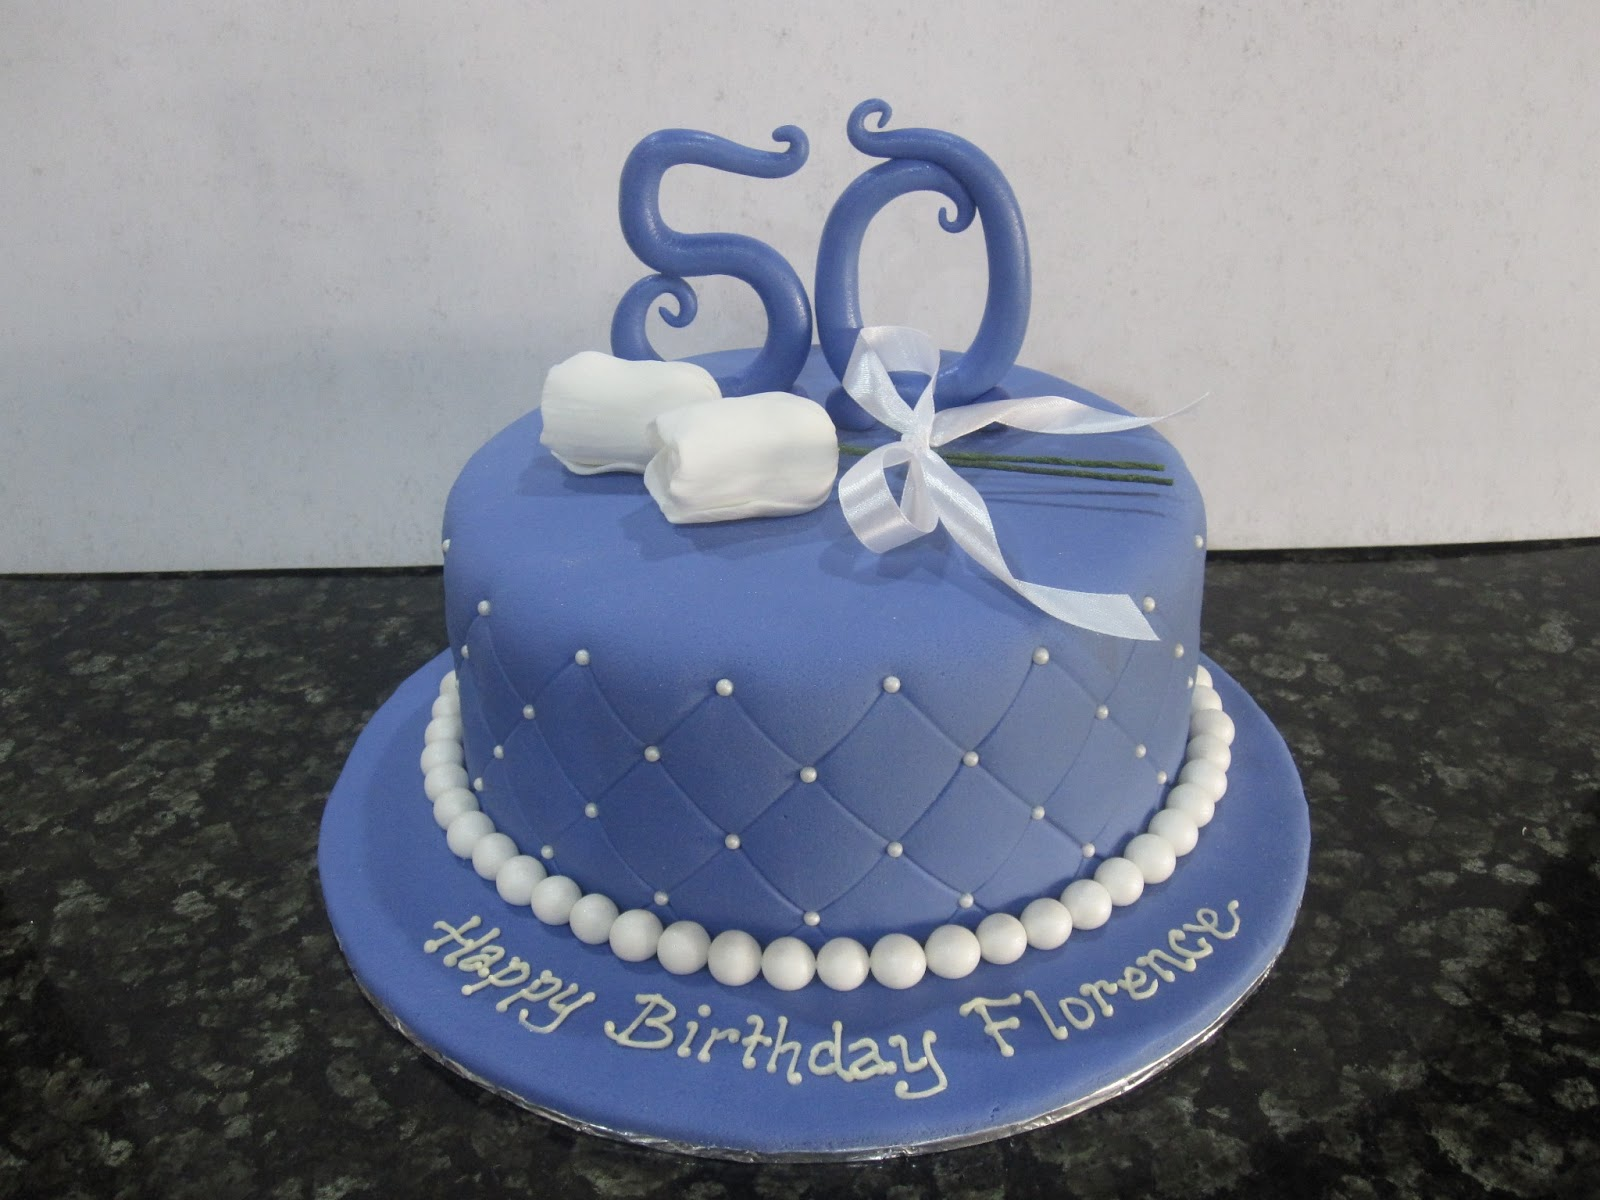 50th Birthday Cake Pictures For Her : J s Cakes: 50th Birthday